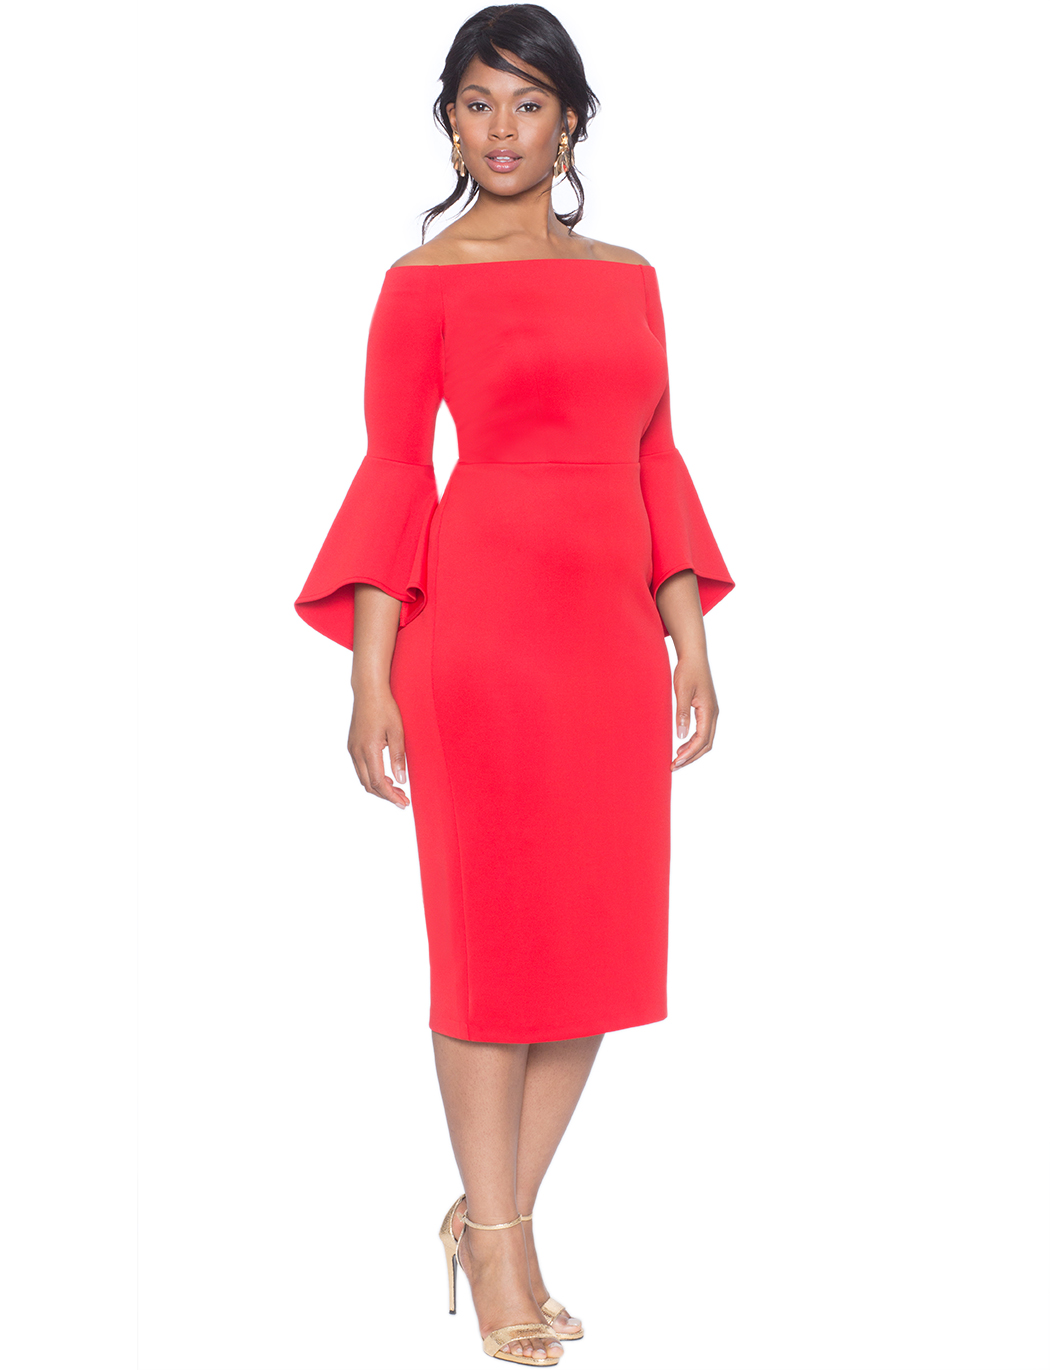 studio off the shoulder flare sleeve dress | women's plus size